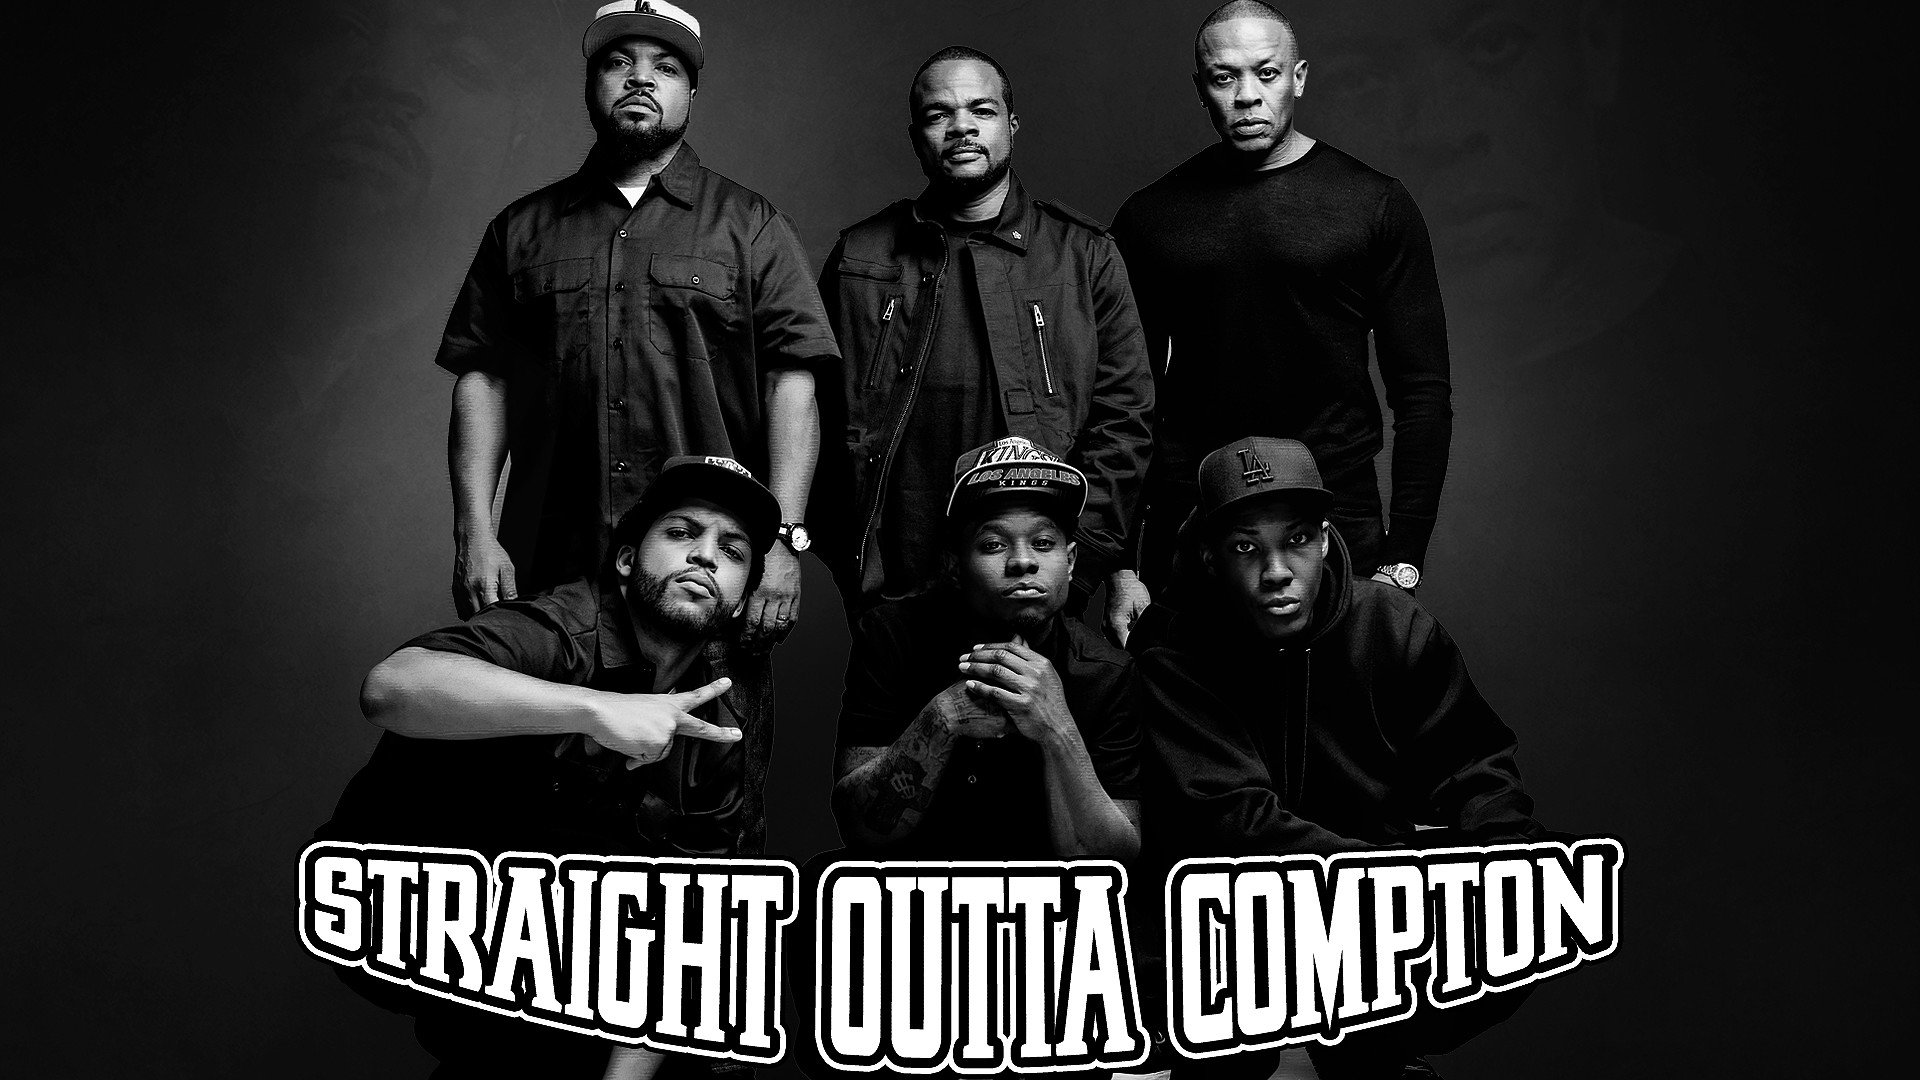 straight outta compton stream deutsch hd